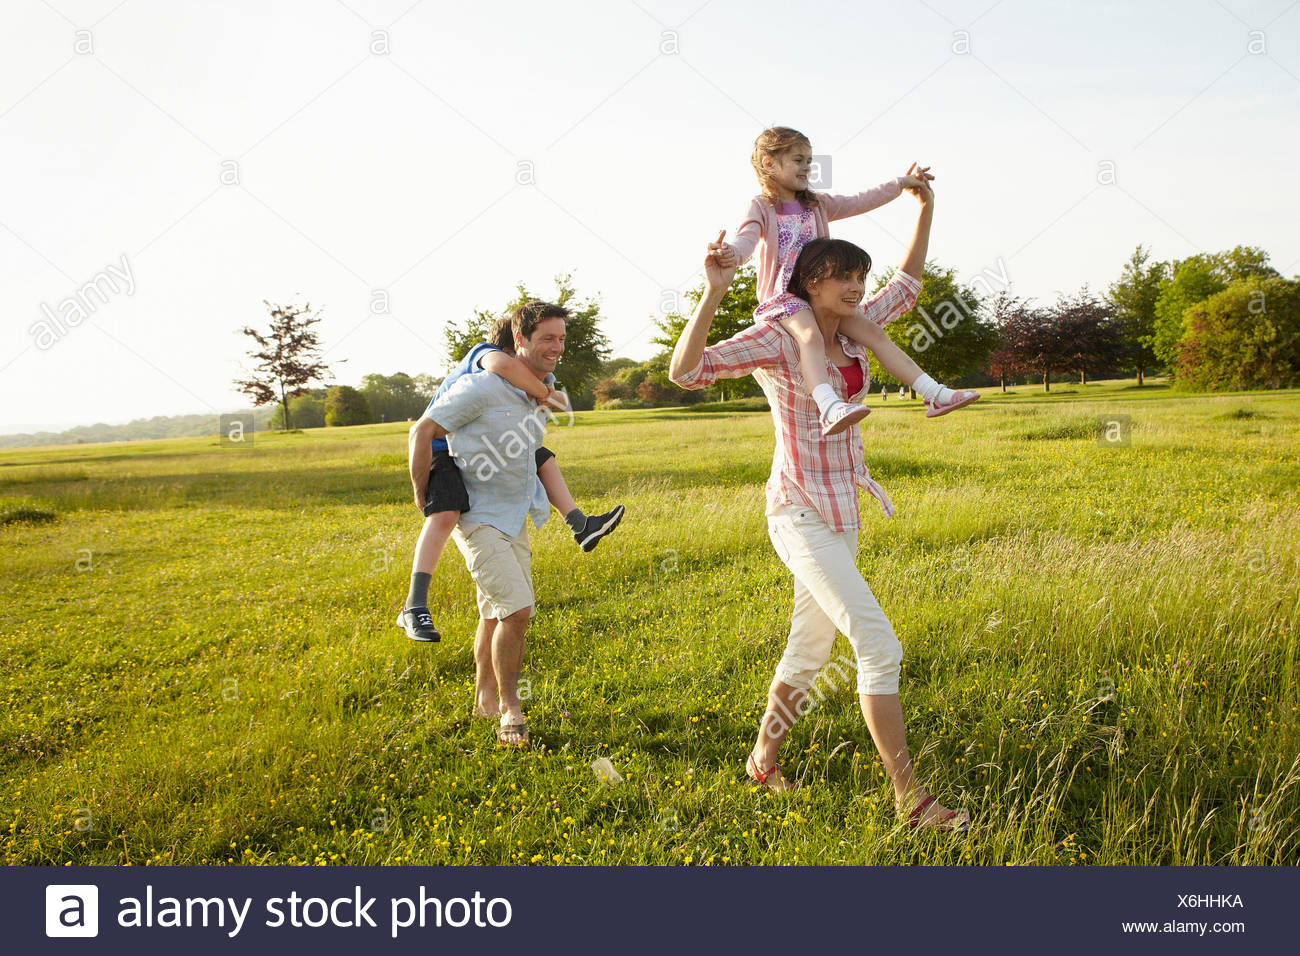 A family, two parents outdoors in the summer giving piggybacks to two children. - Stock Image